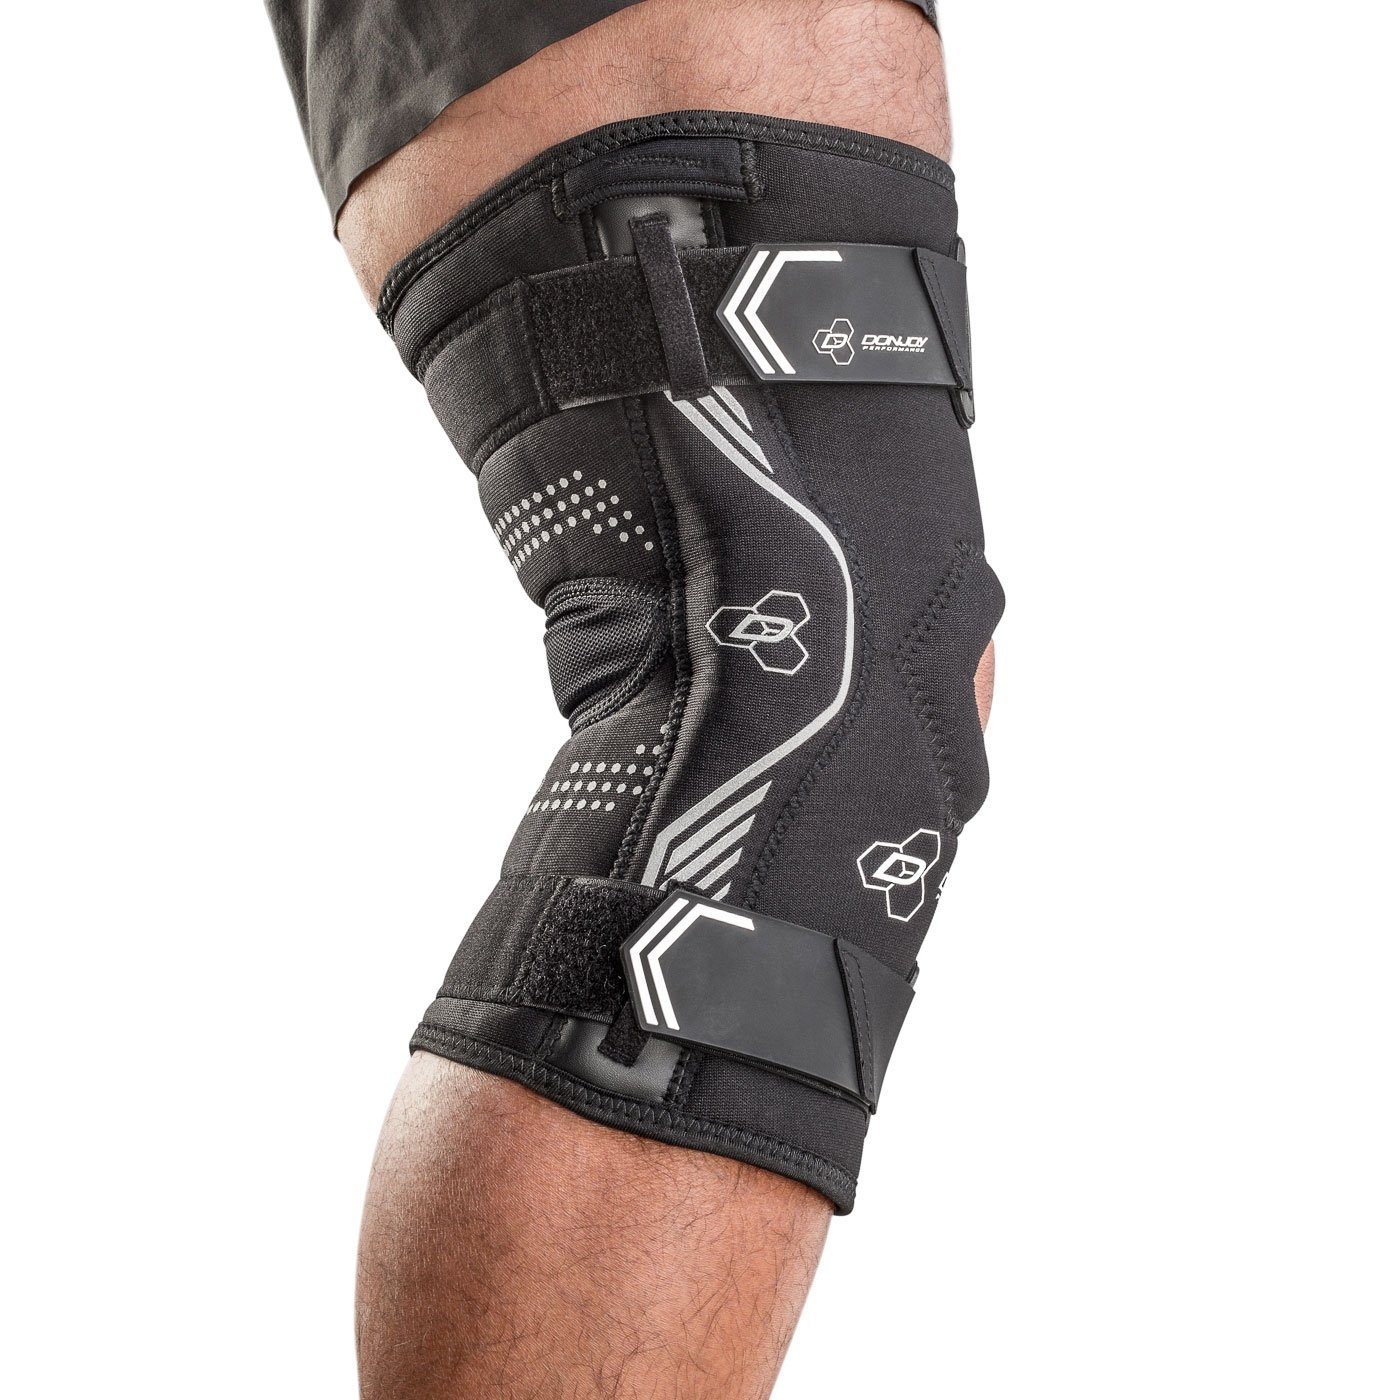 e4a5bbe183 DonJoy Performance Bionic Drytex Hinged Knee Sleeve: Amazon.ca: Sports &  Outdoors